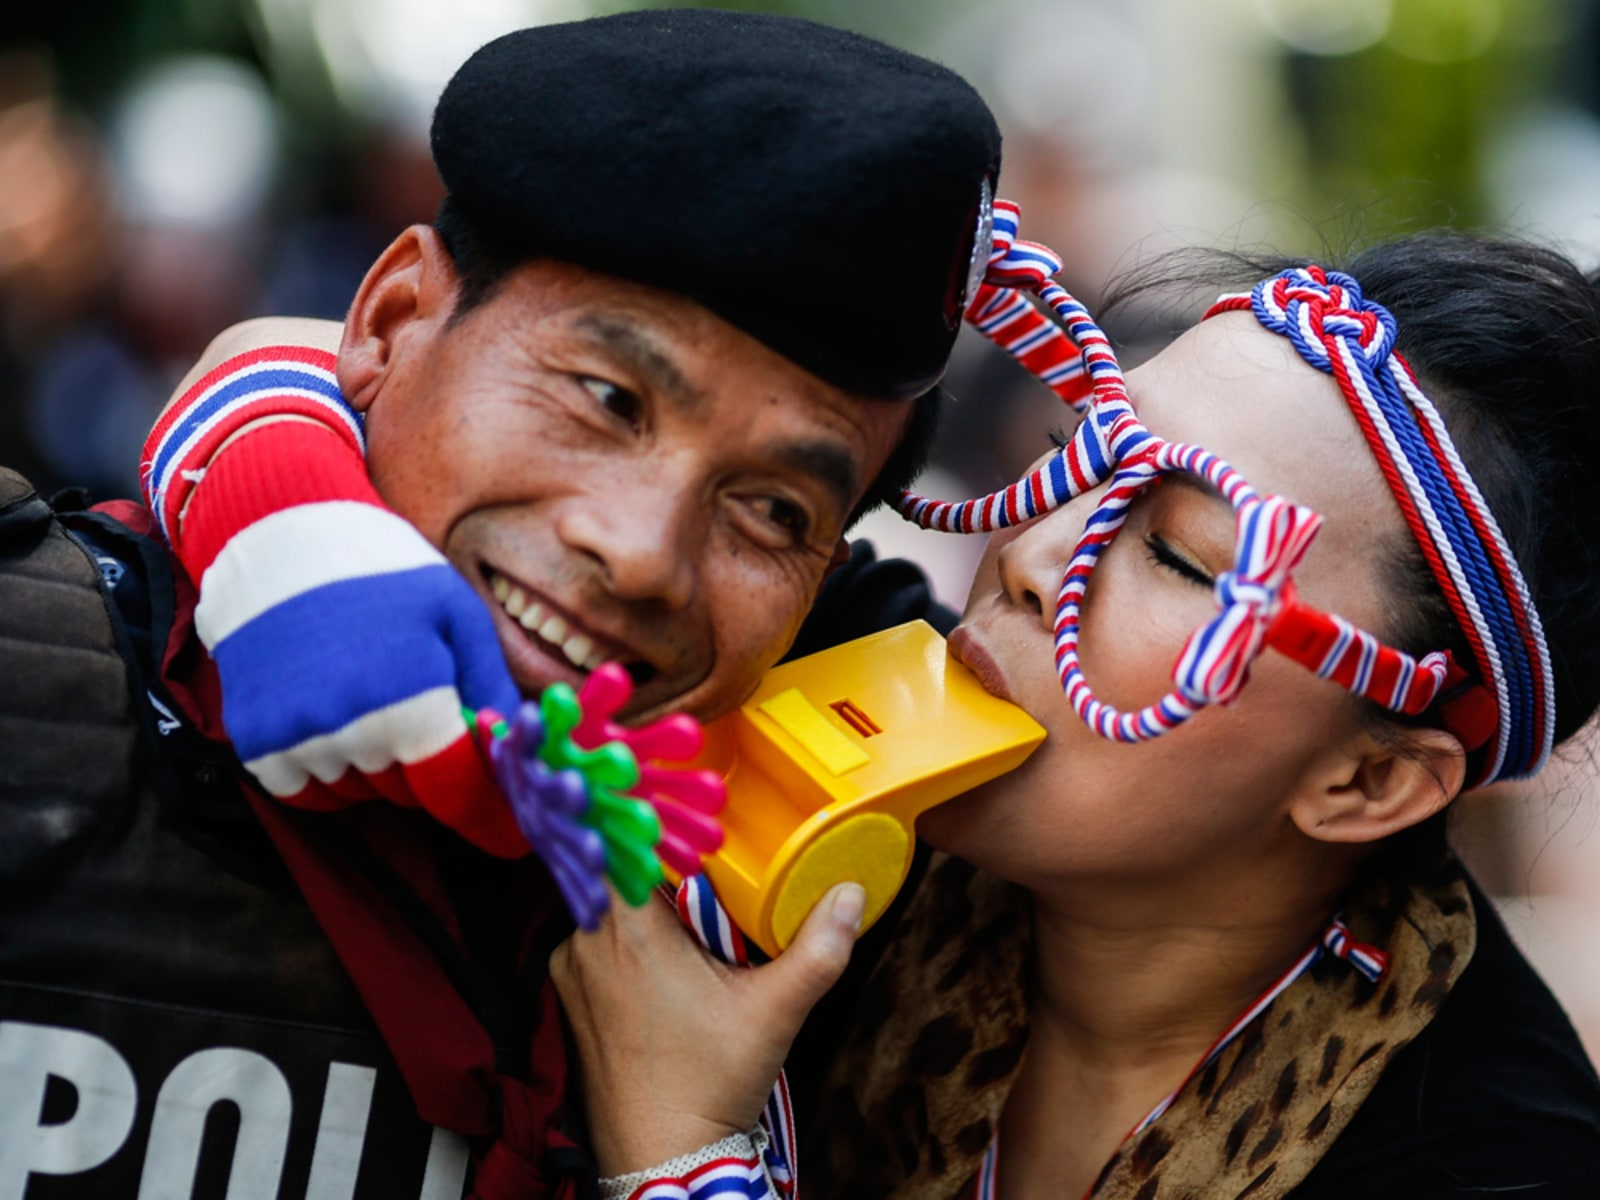 Image: An anti-government protester blows on a whistle next to a riot policeman as she gathers with others outside the headquarters of the ruling Puea Thai Party of Prime Minister Yingluck Shinawatra in Bangkok